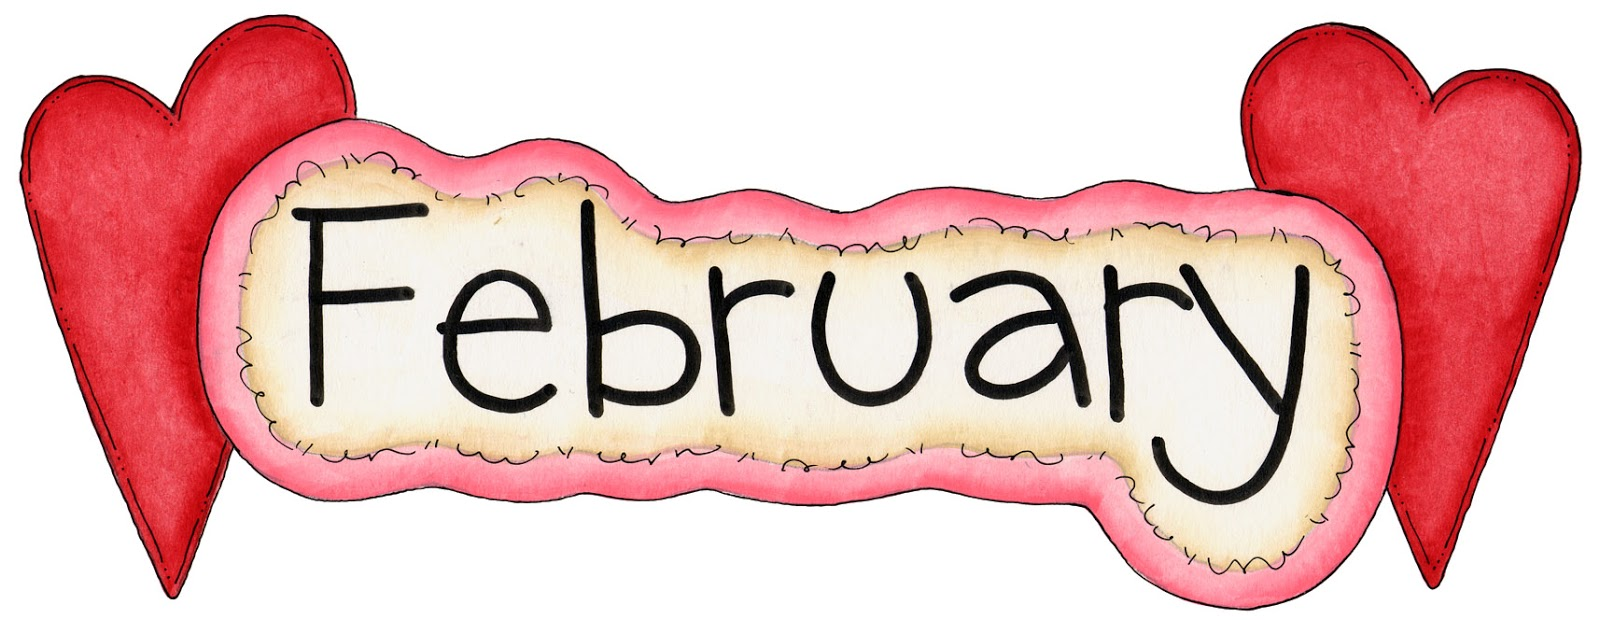 Free february clipart.